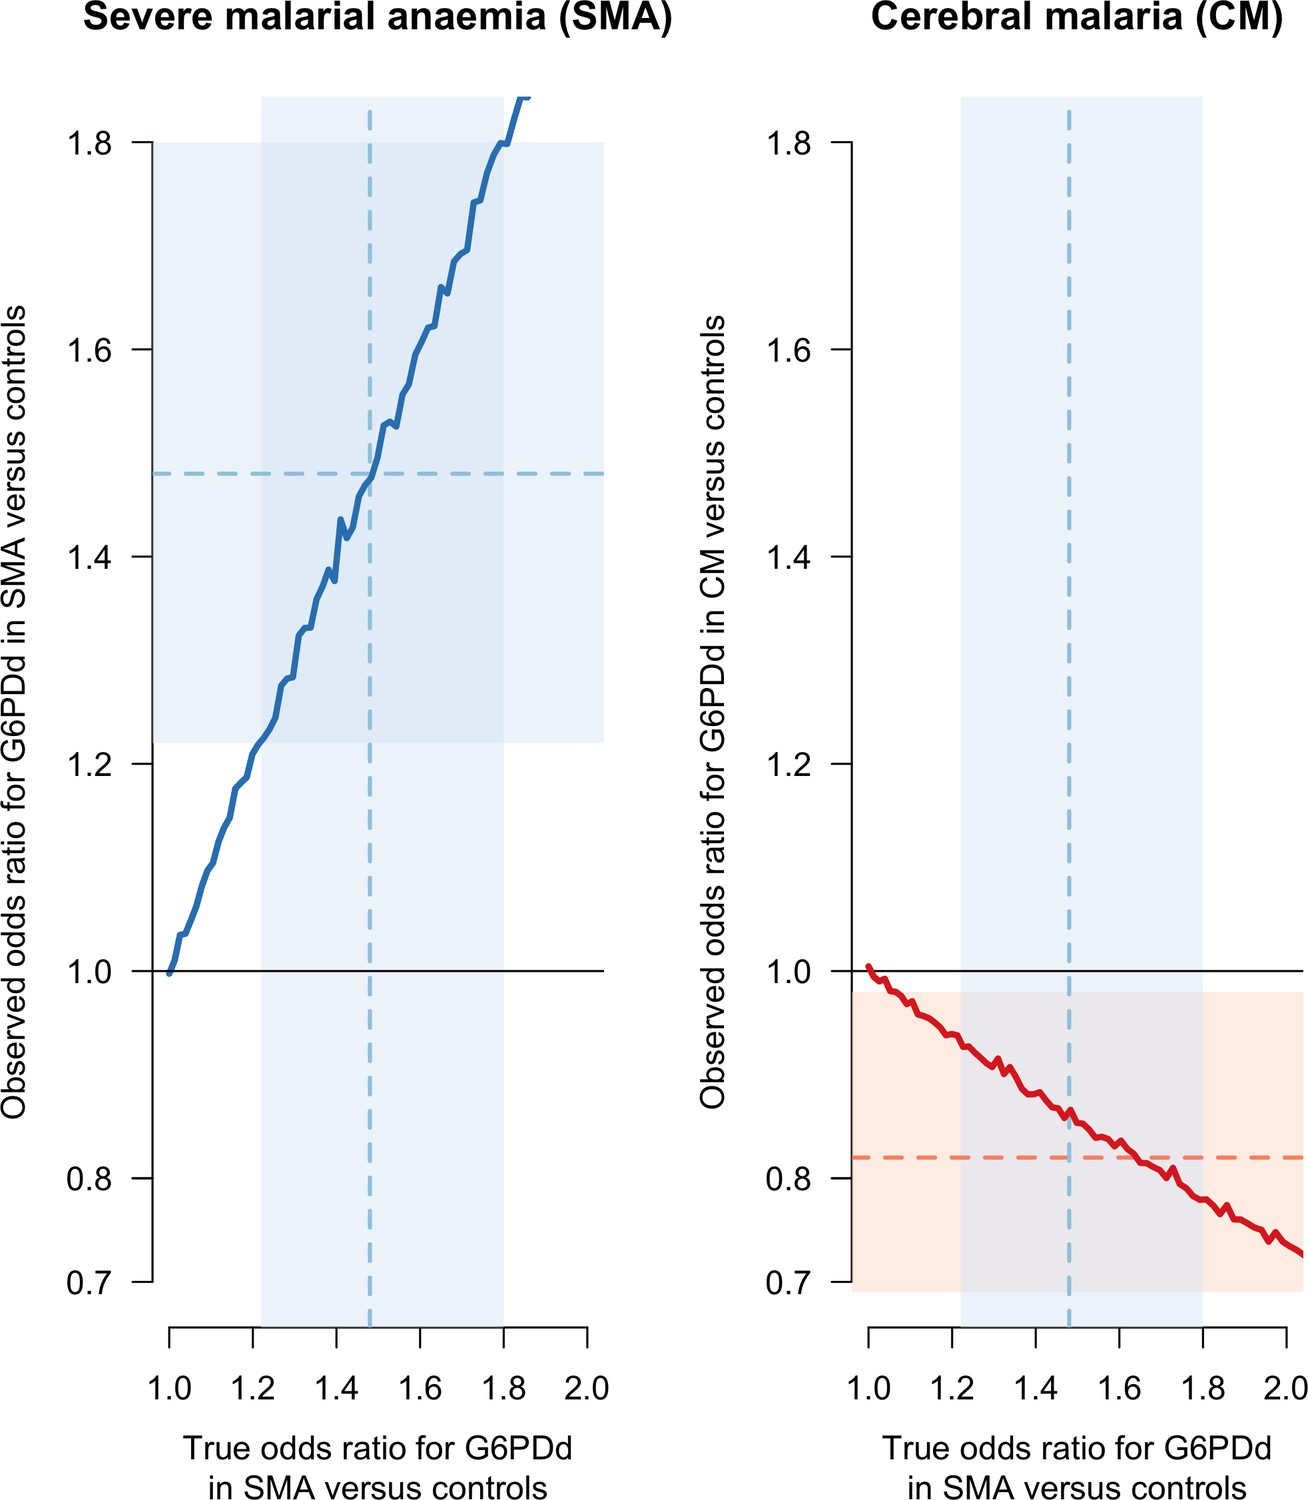 Collider Bias And The Apparent Protective Effect Of Glucose 6 Phosphate Dehydrogenase Deficiency On Cerebral Malaria Elife